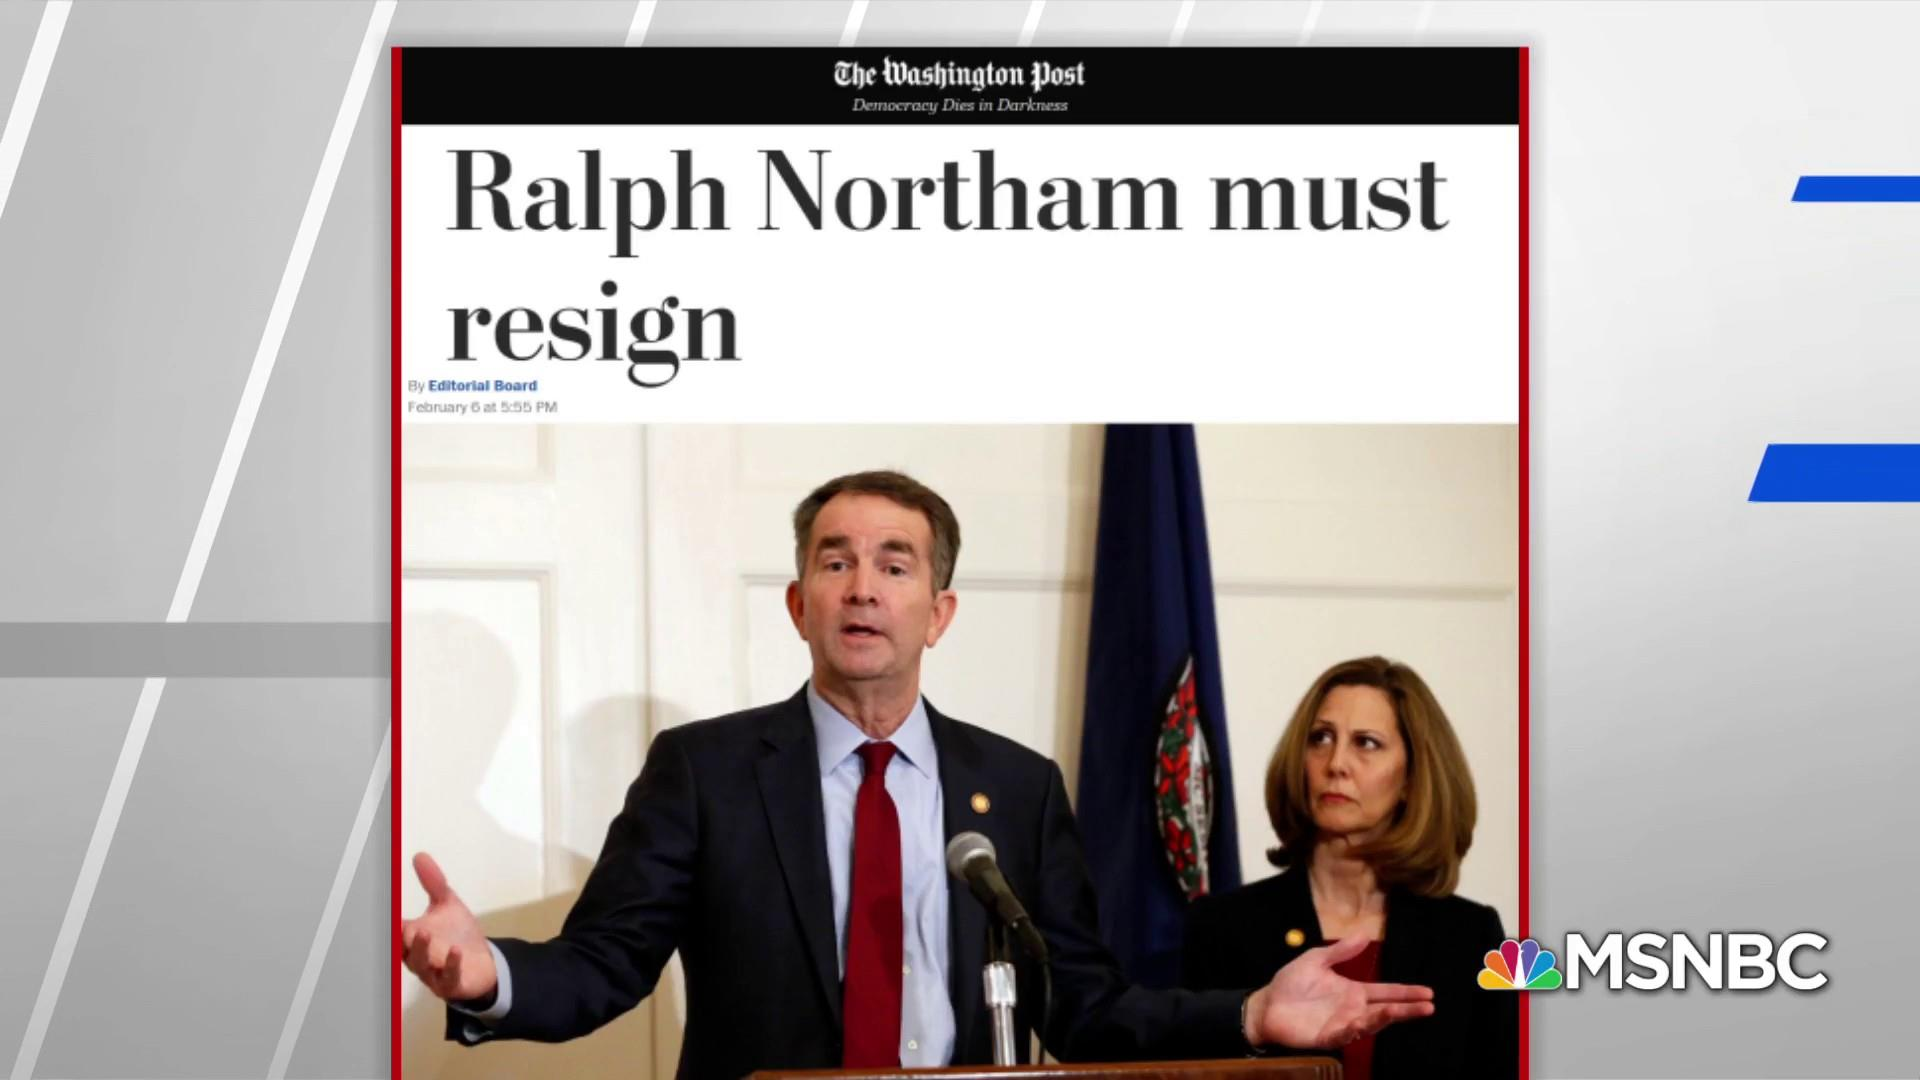 Washington Post Editorial Board calls Northam to resign